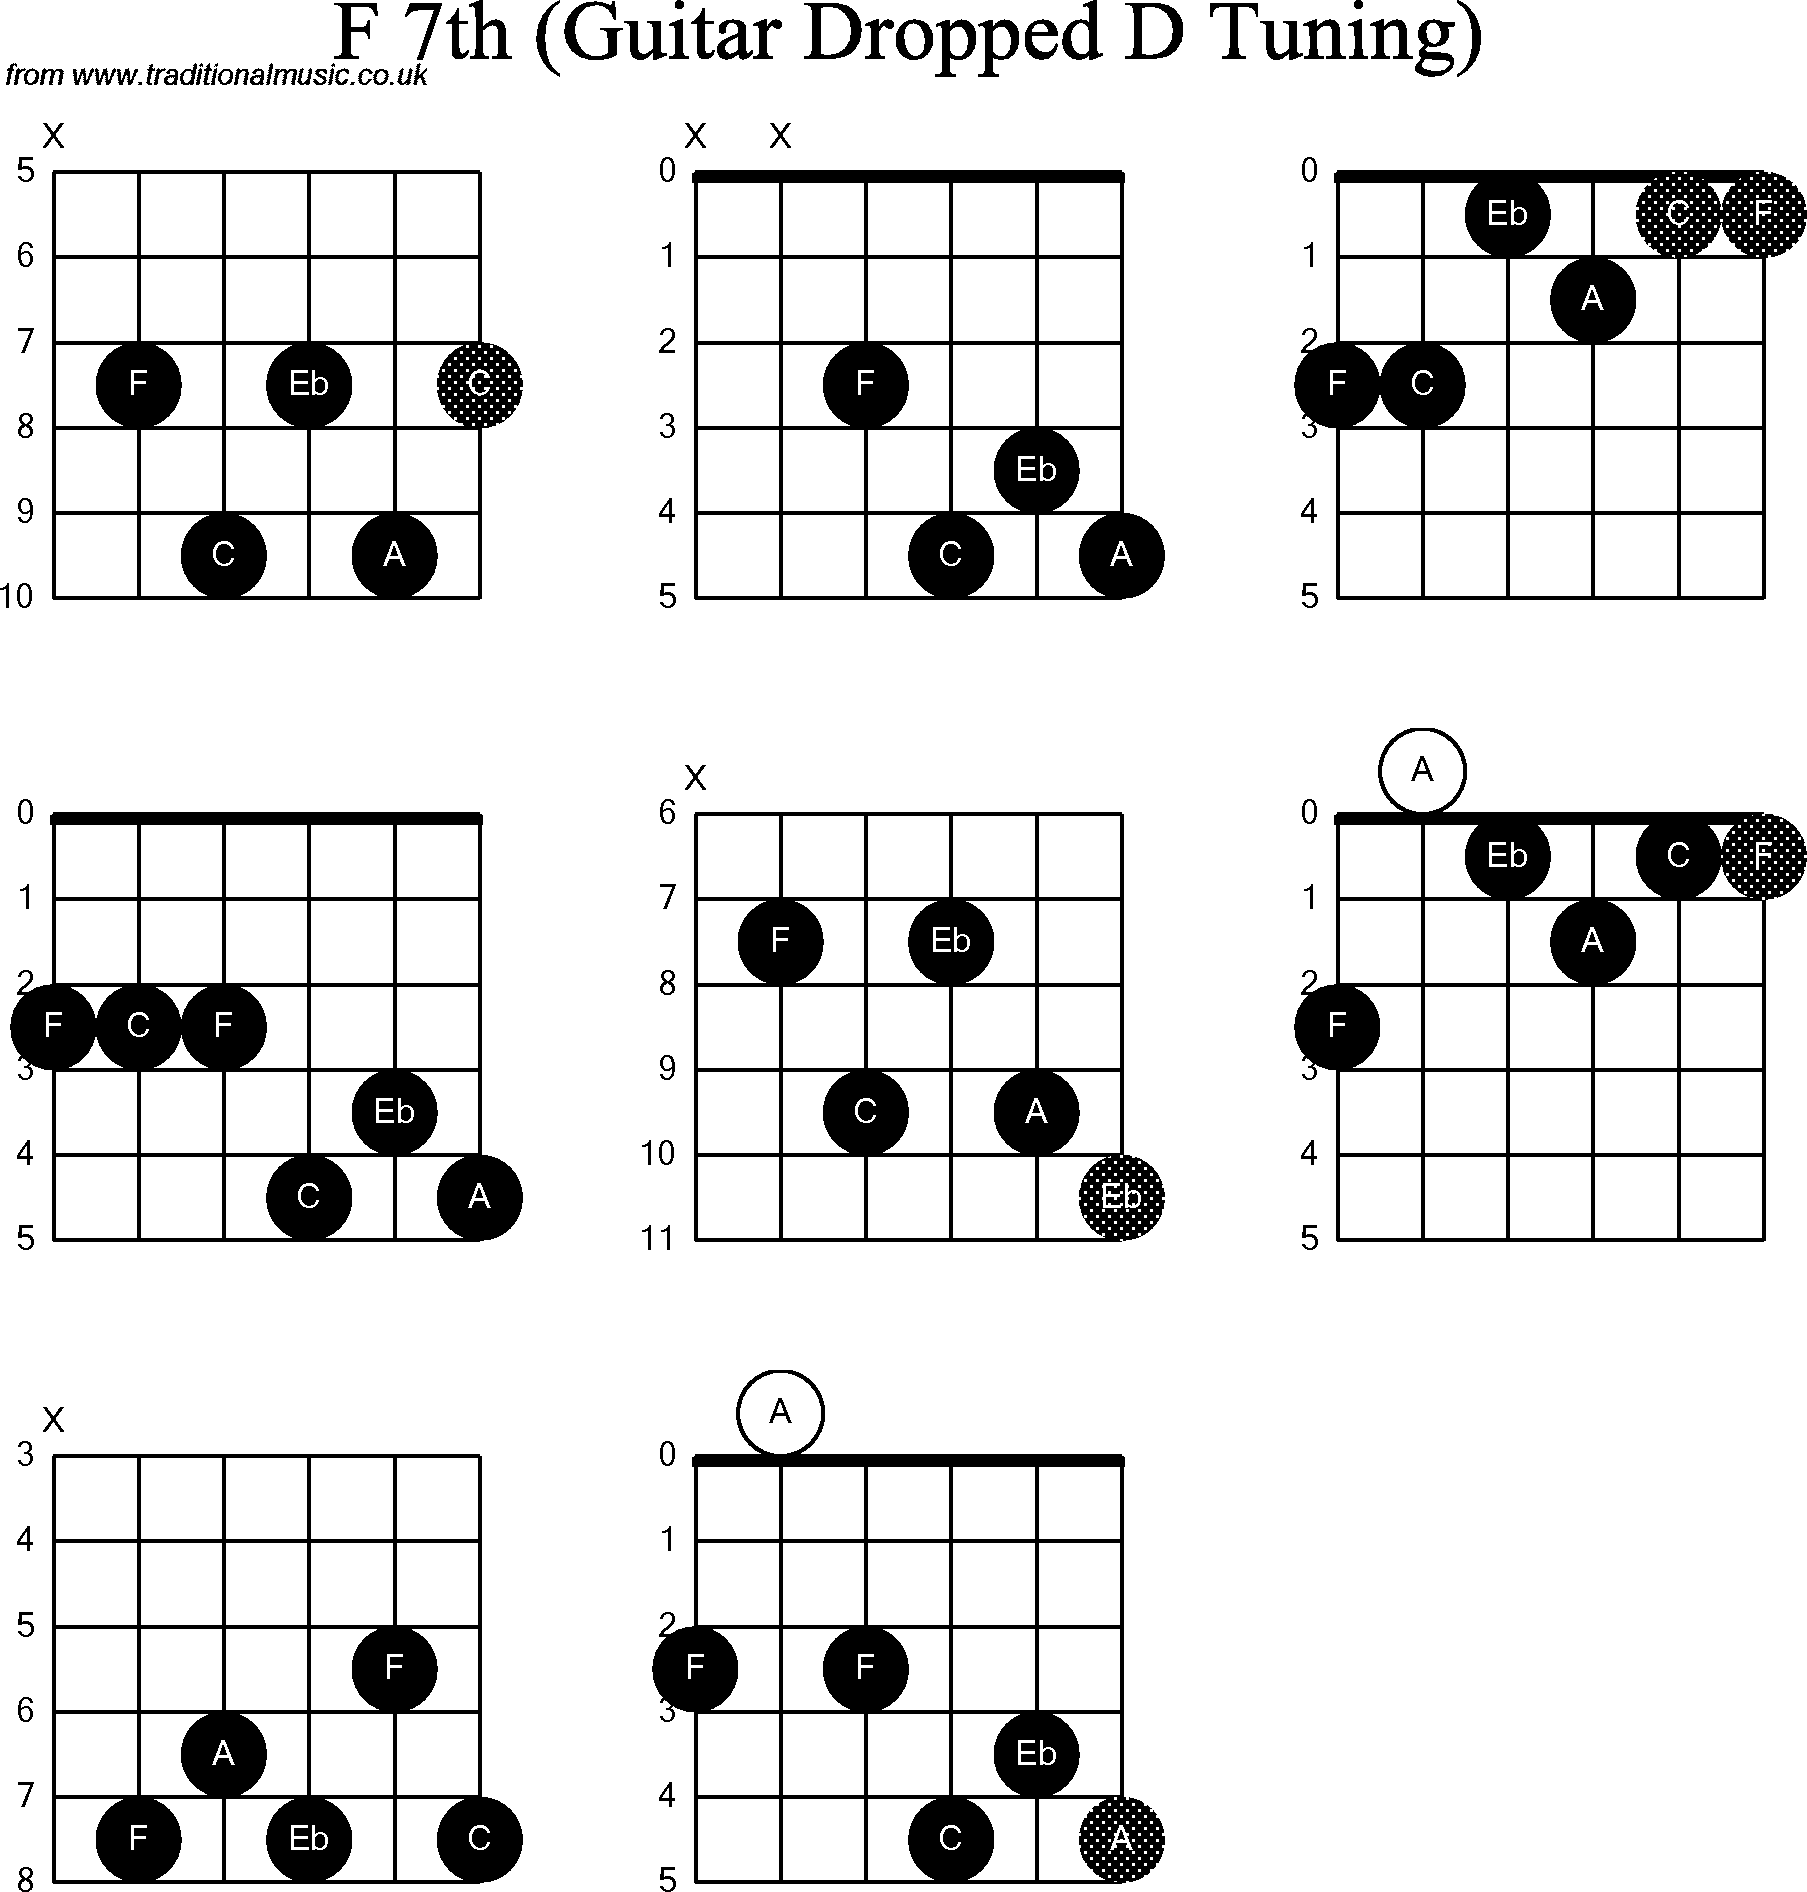 Chord Diagrams For Dropped D Guitardadgbe F7th